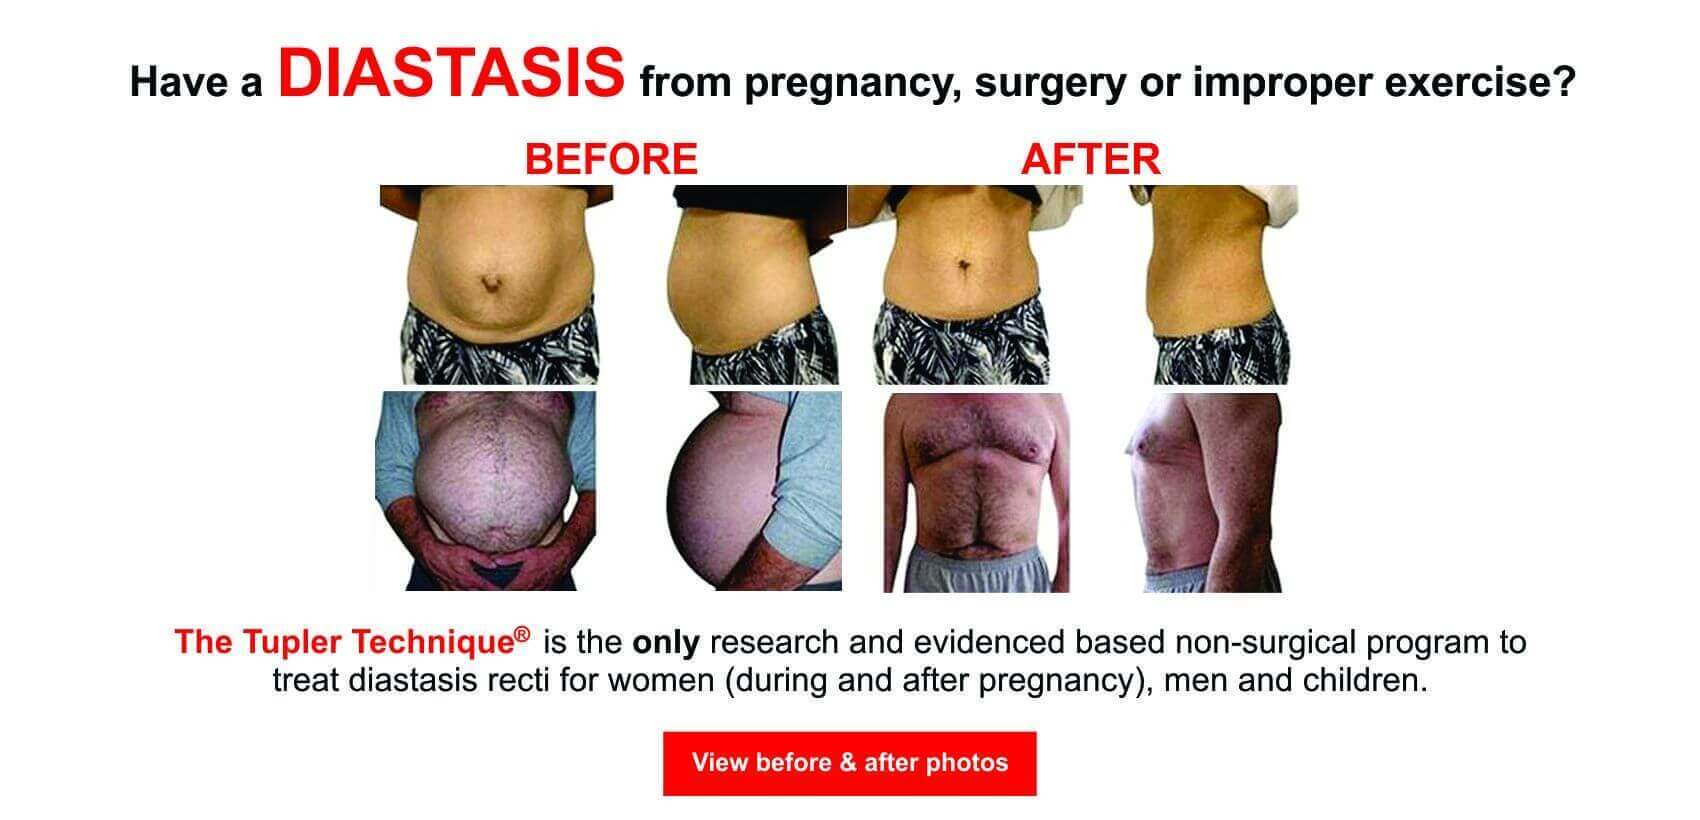 Diastasis Recti Treatment Program Exercise Program For Abdominal Separation